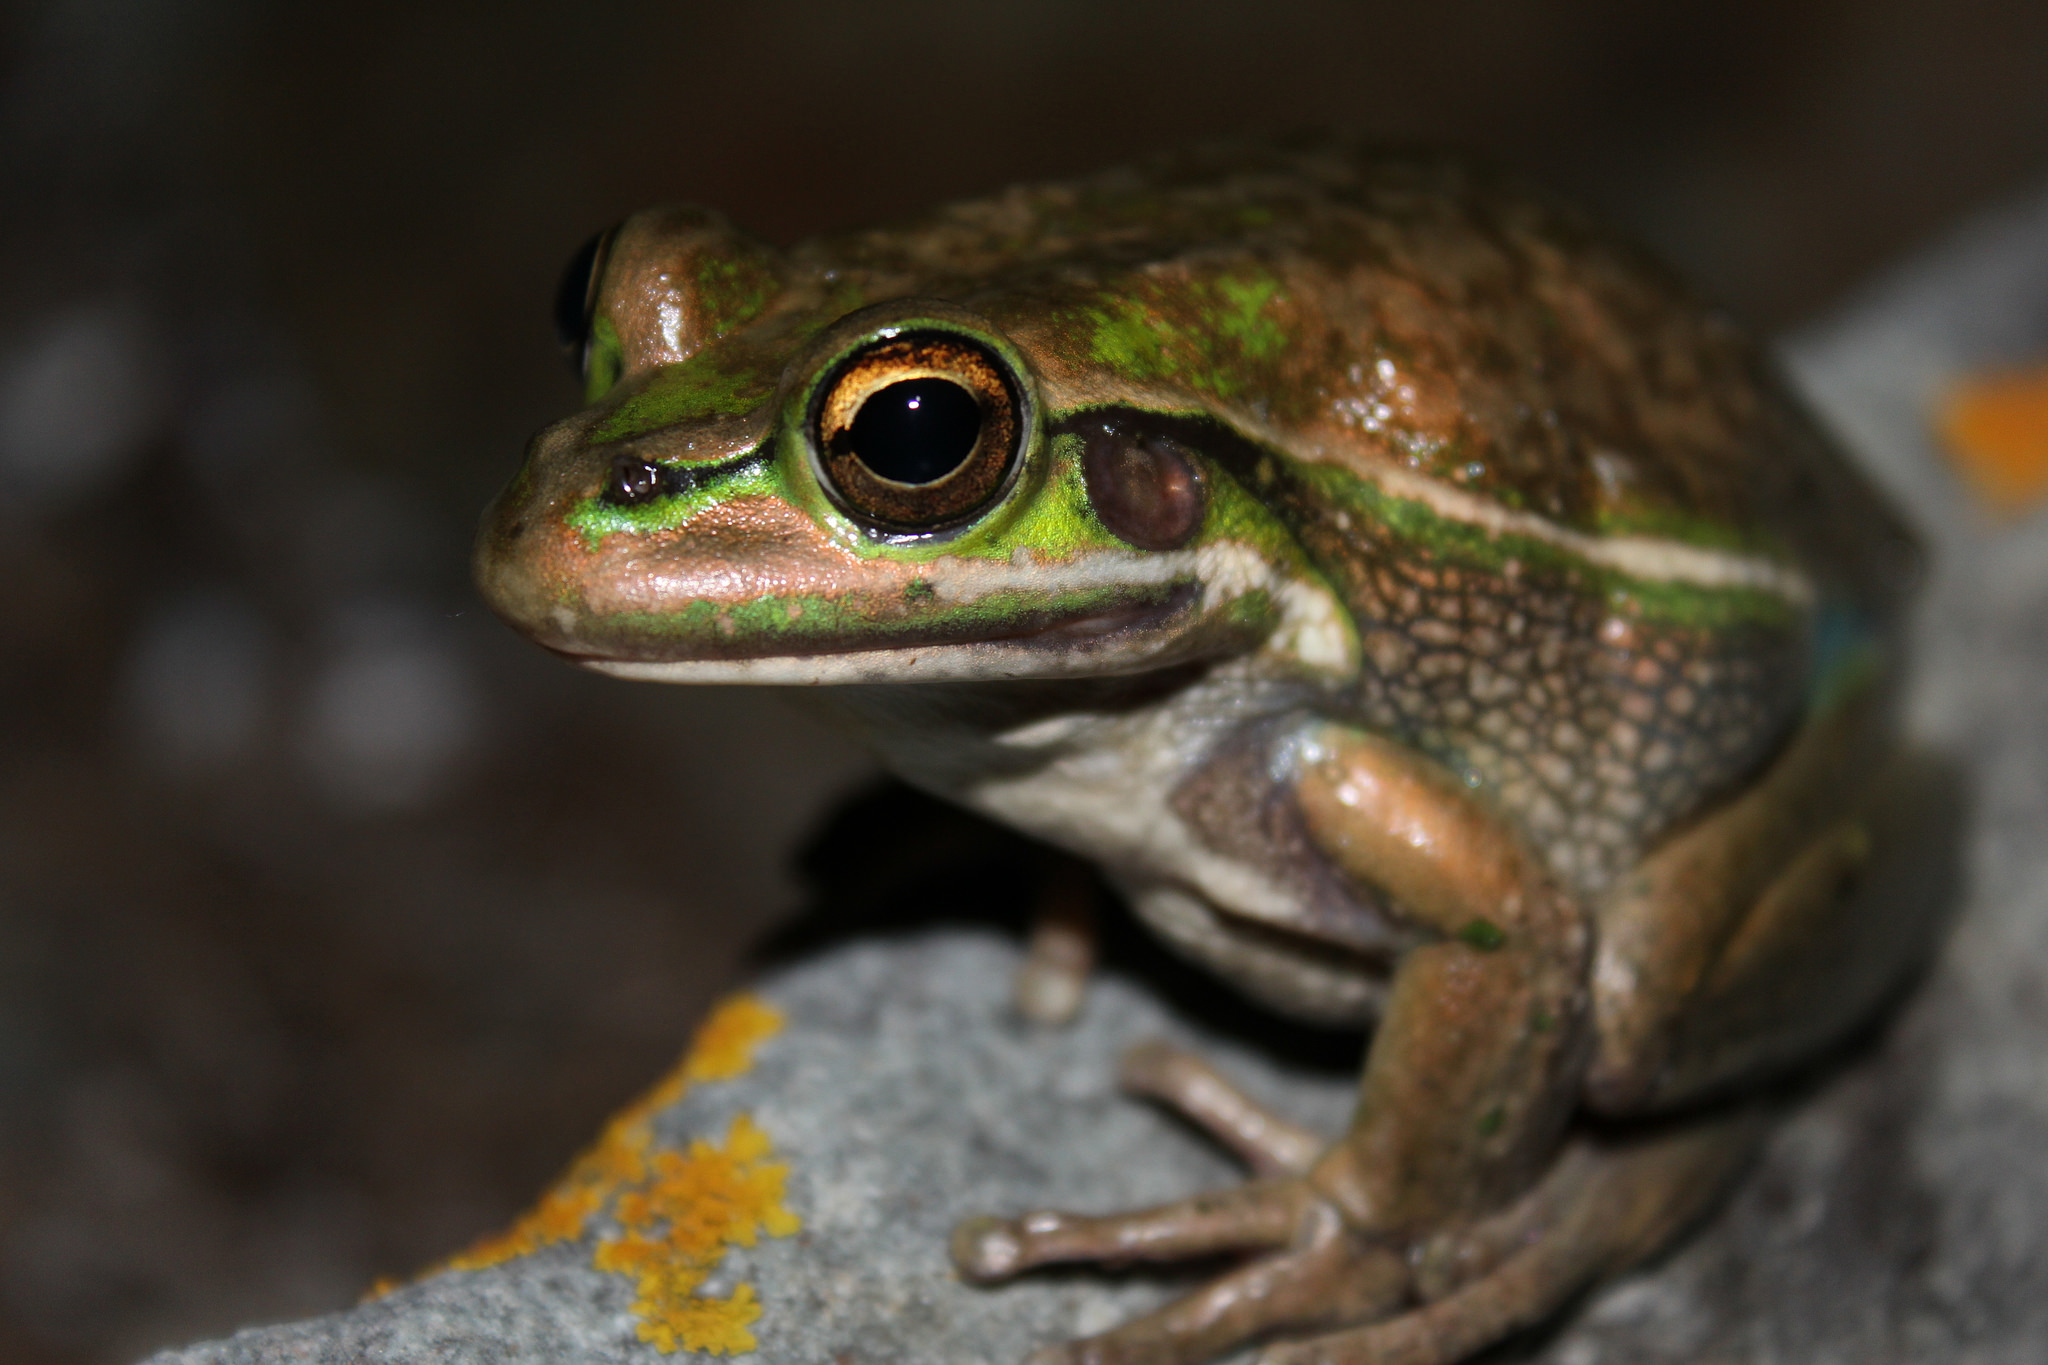 2014 Frogs in the Wild, Honorable Mention, green and golden bell frog by Chad Beranek, Australia.